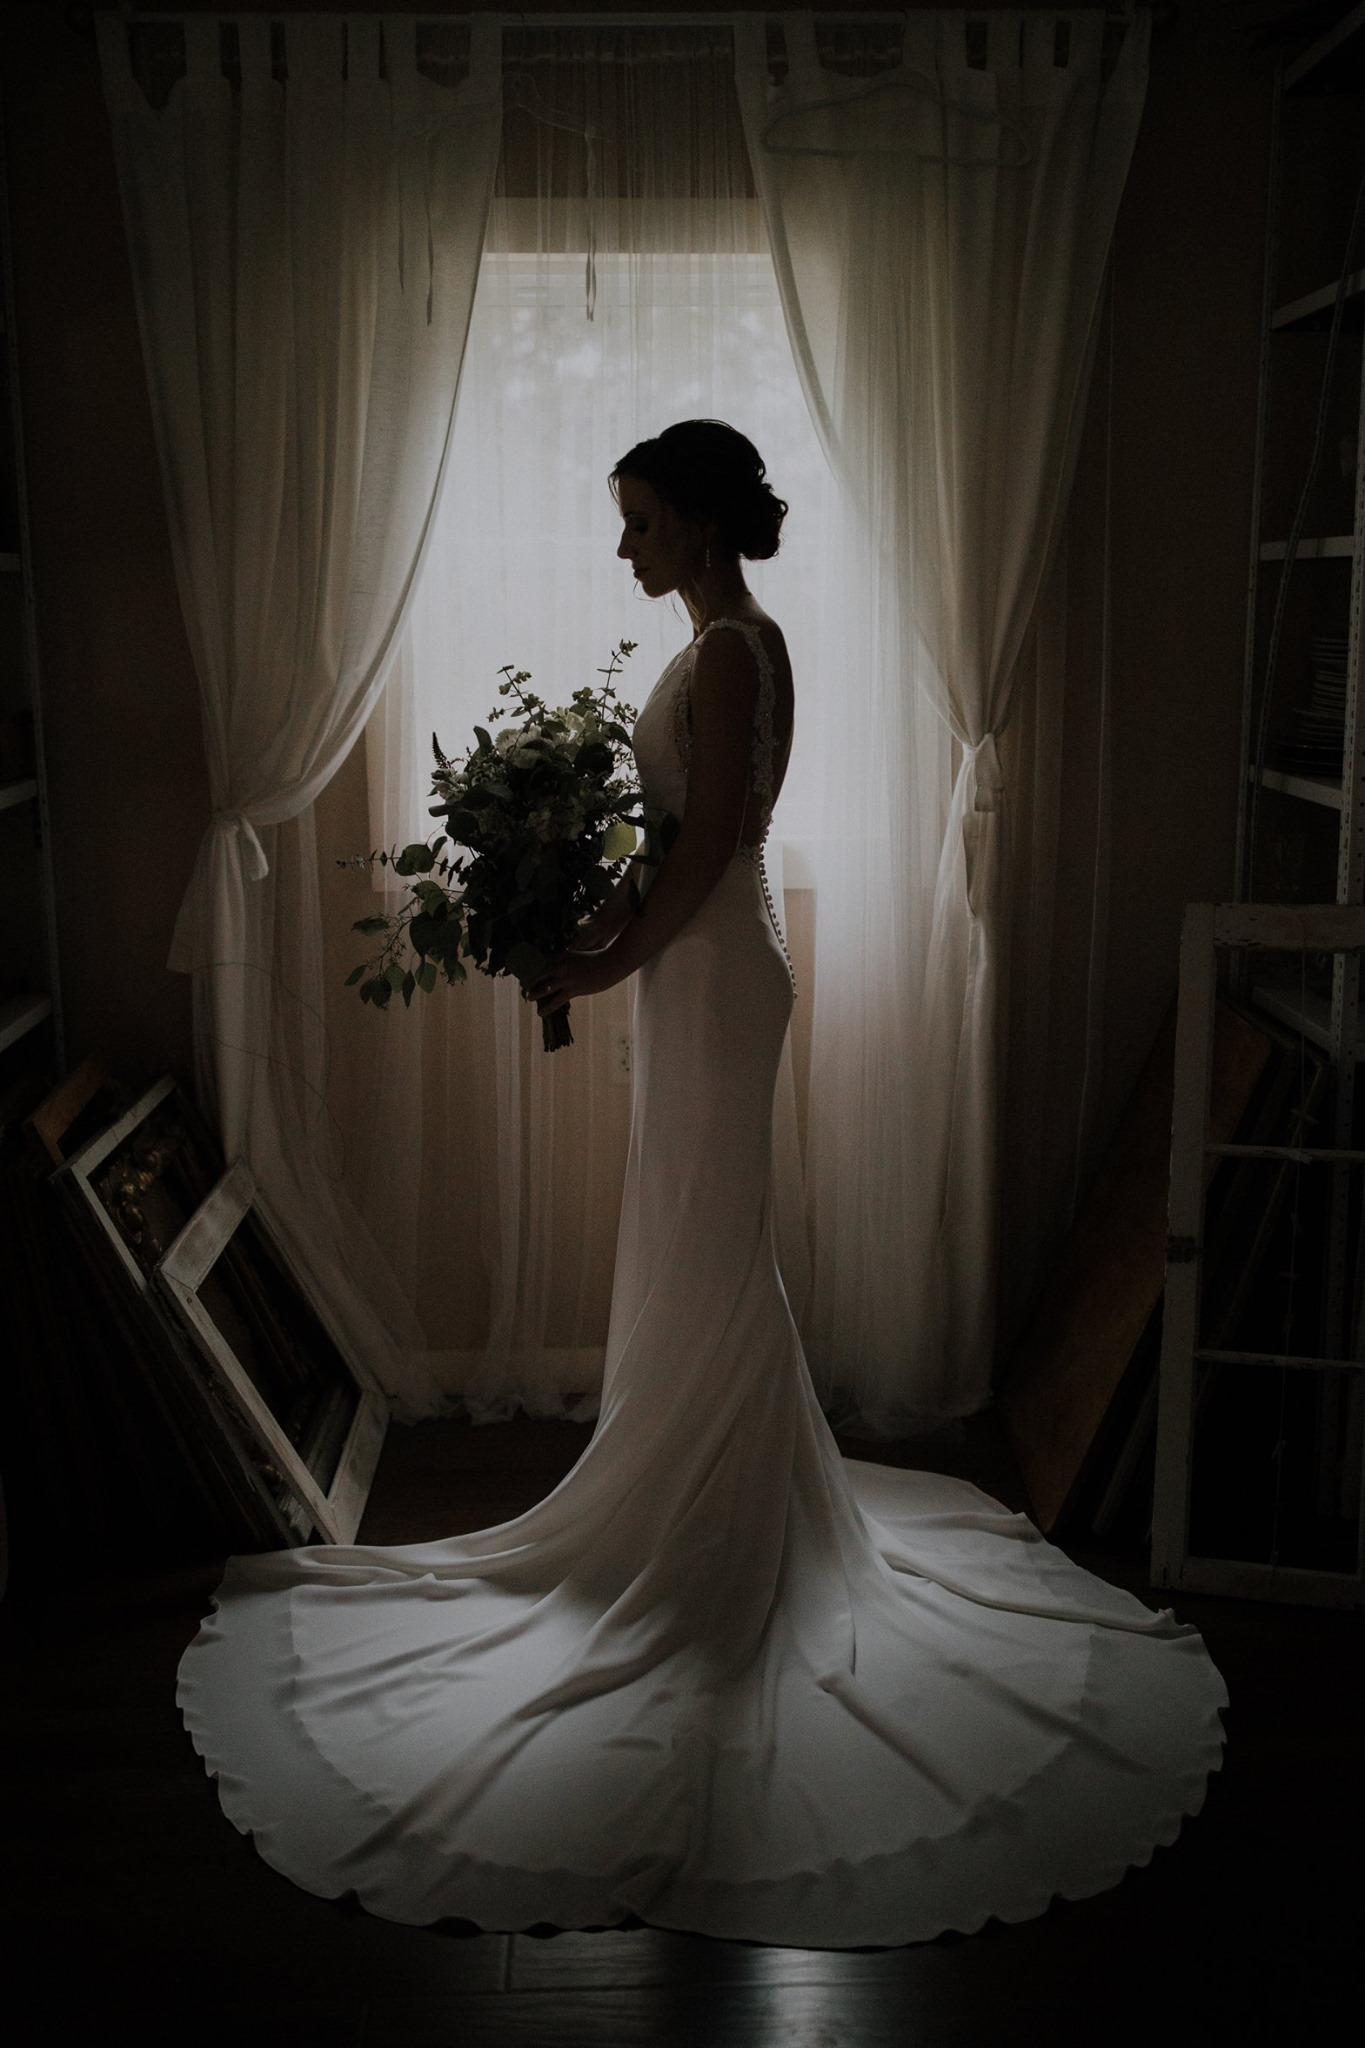 A silhouette of a bride posing in front of a window as she holds a bridal bouquet